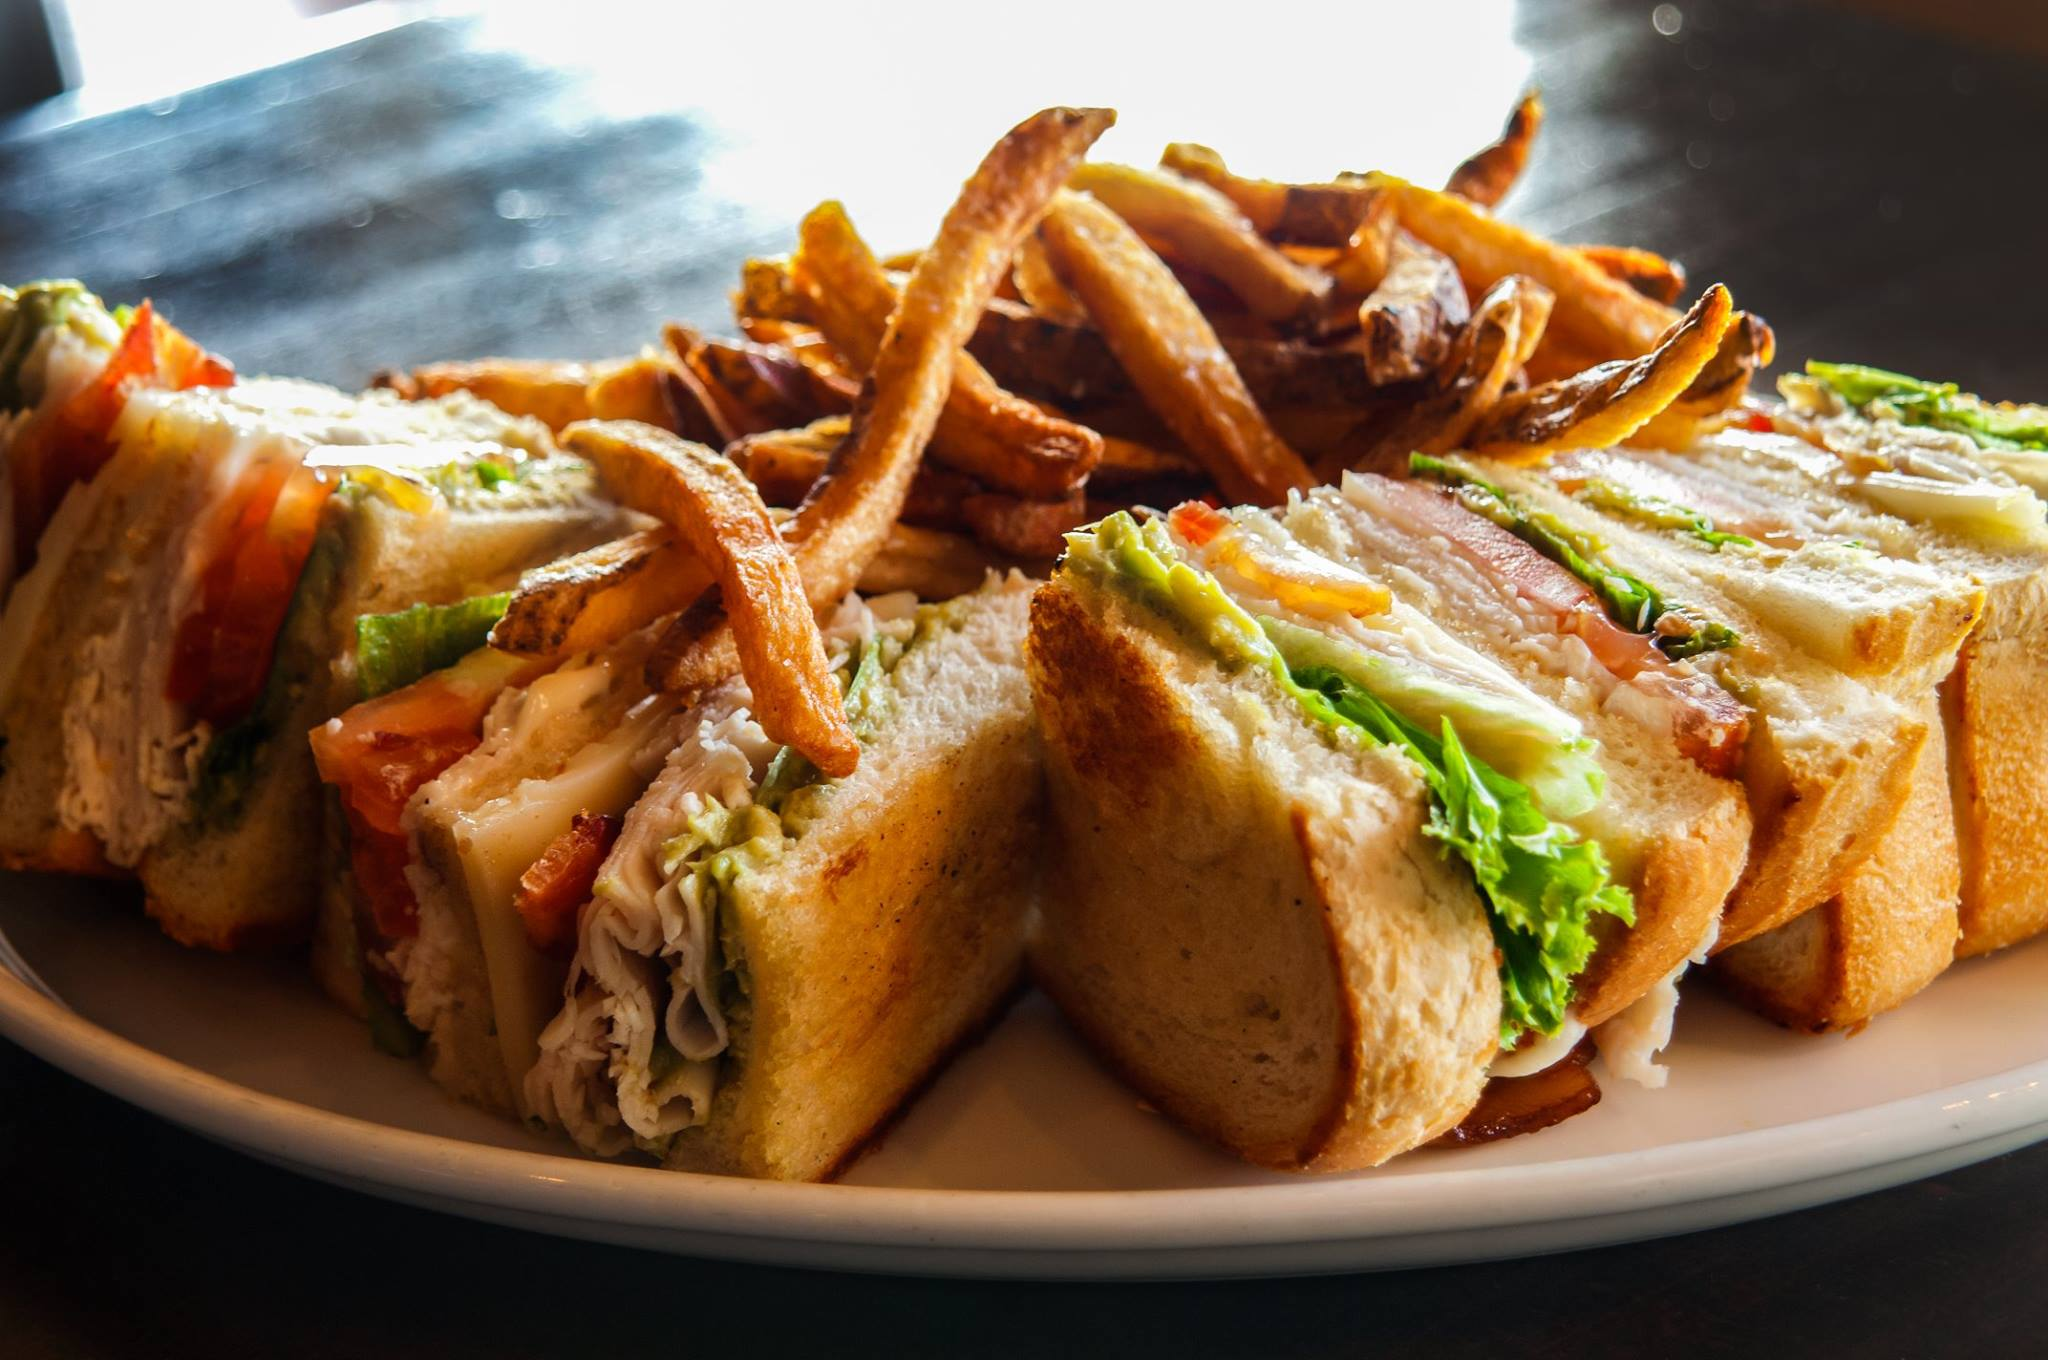 Sandwiches. The Prairie Tap House